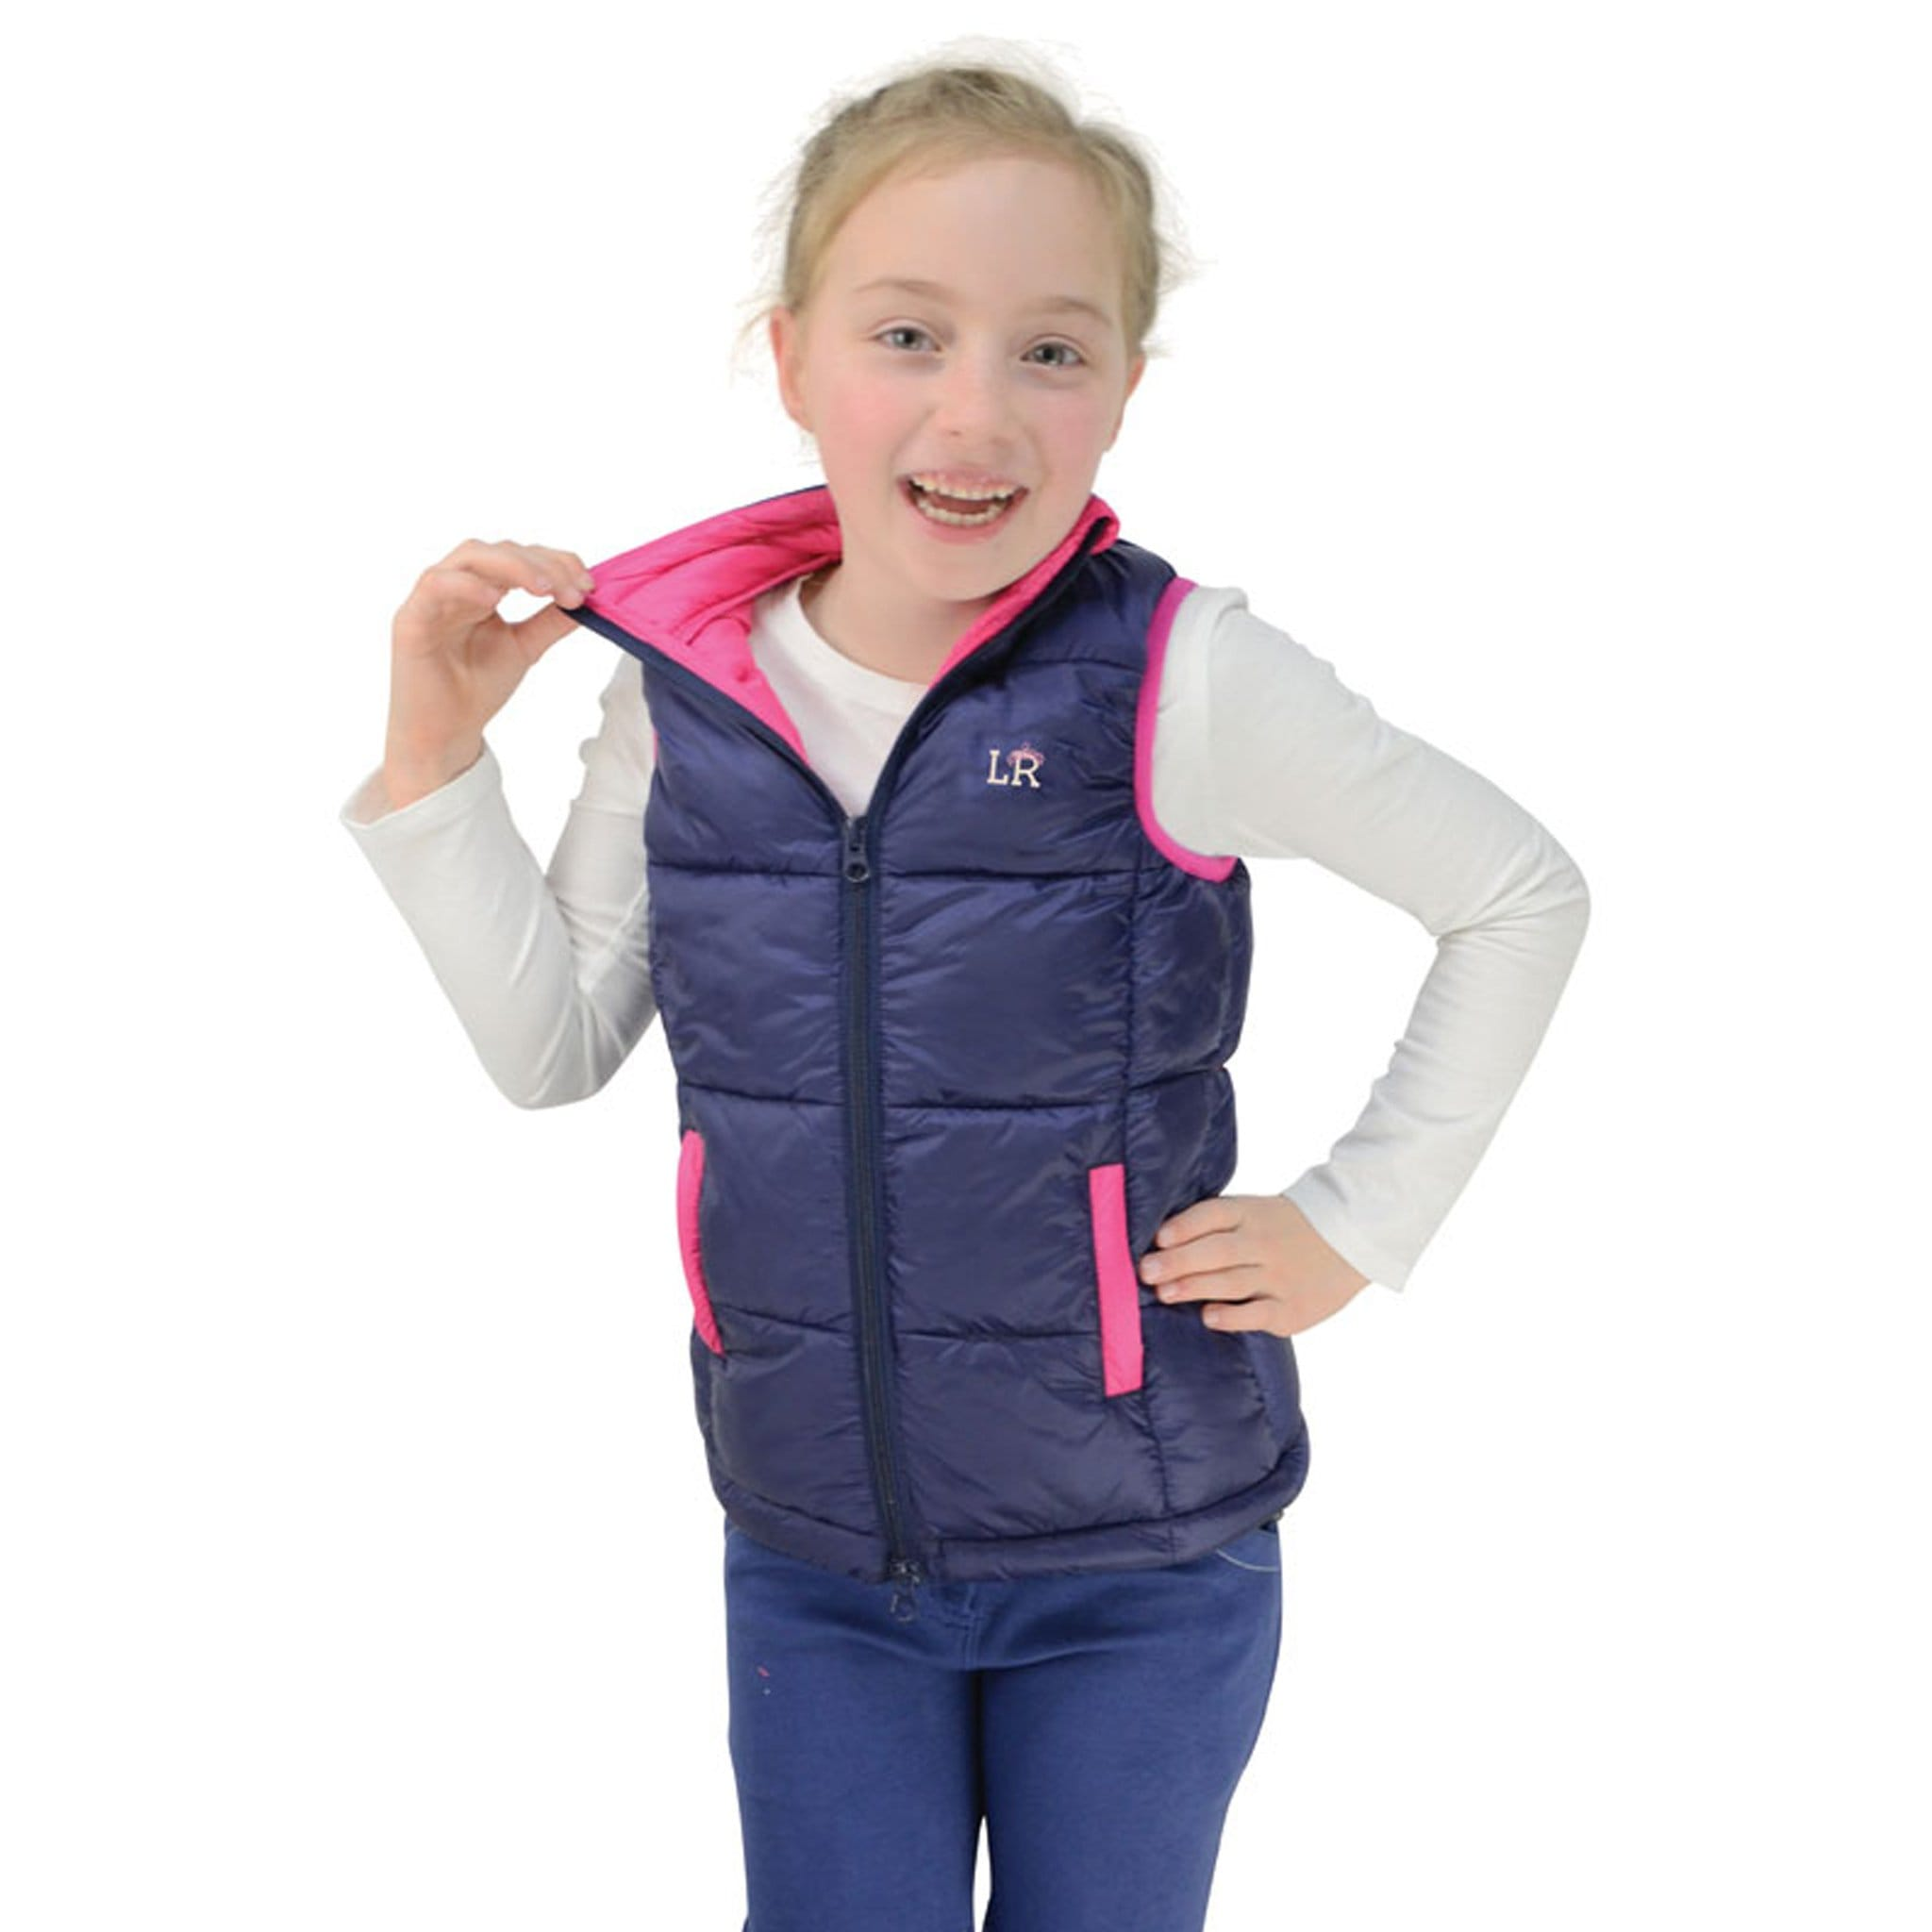 Hy Children's Little Rider Annabelle Padded Gilet Front Collar 22083.